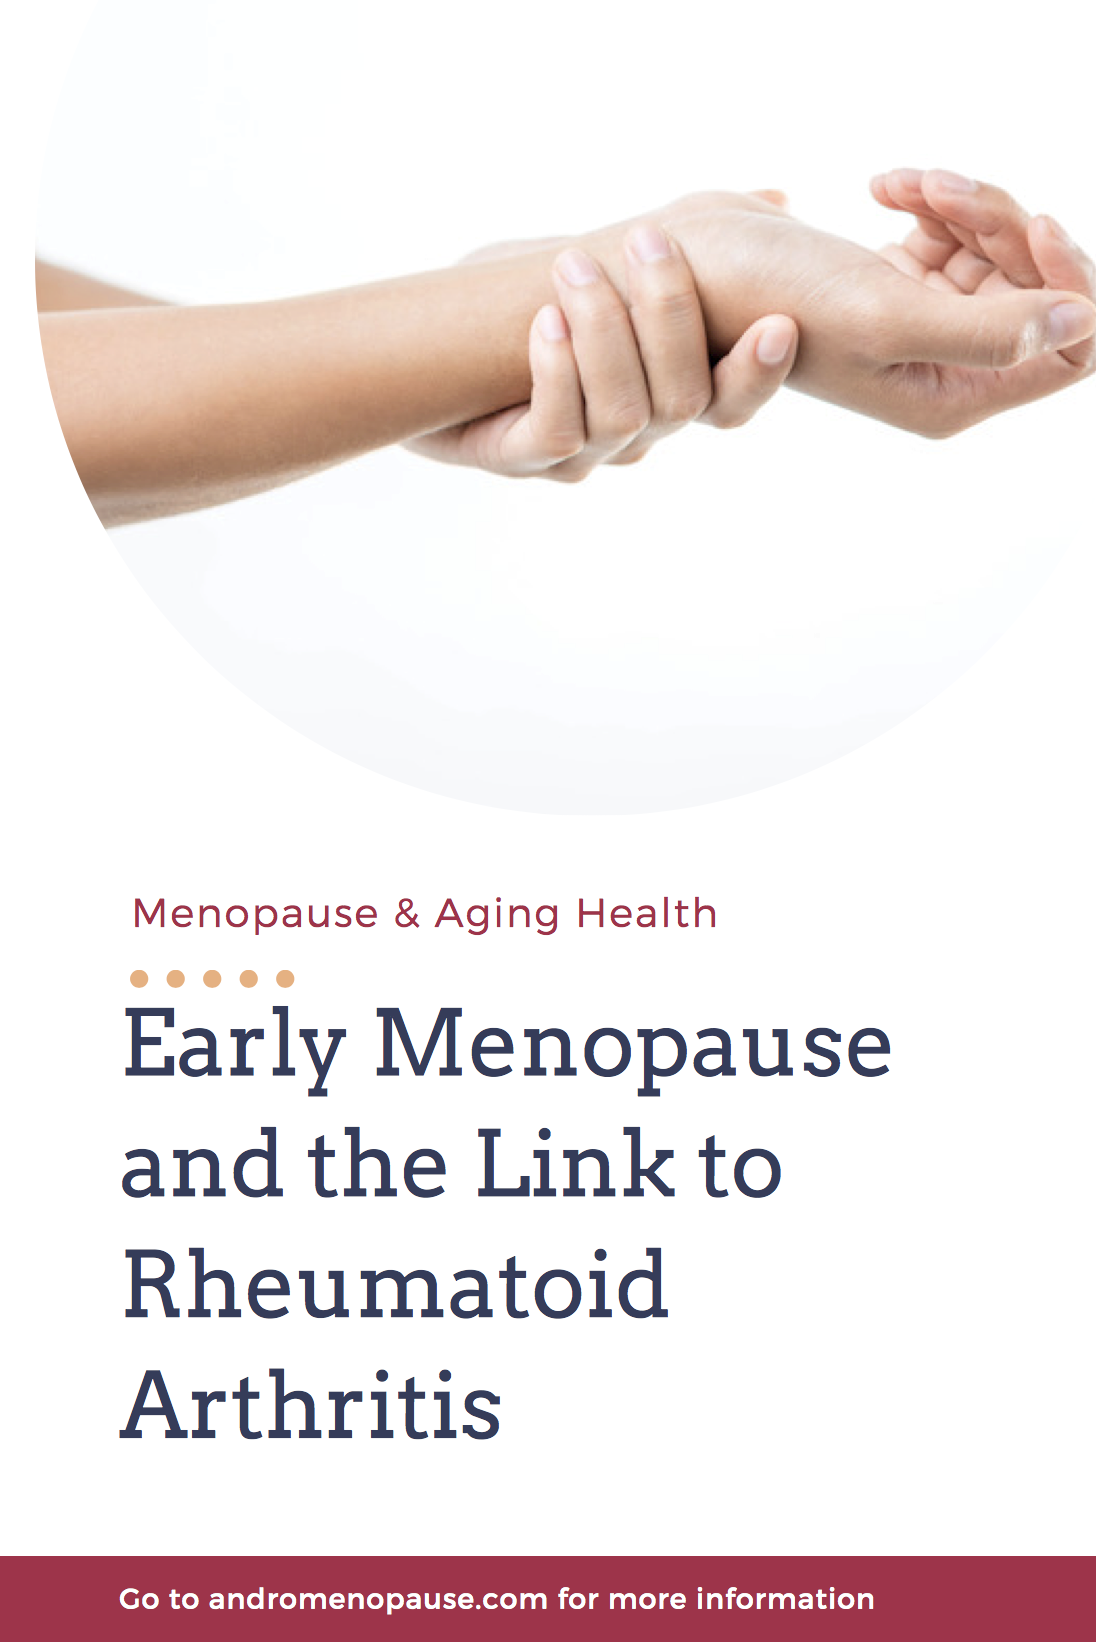 Rheumatoid Arthritis and Menopause: What You Need to Know